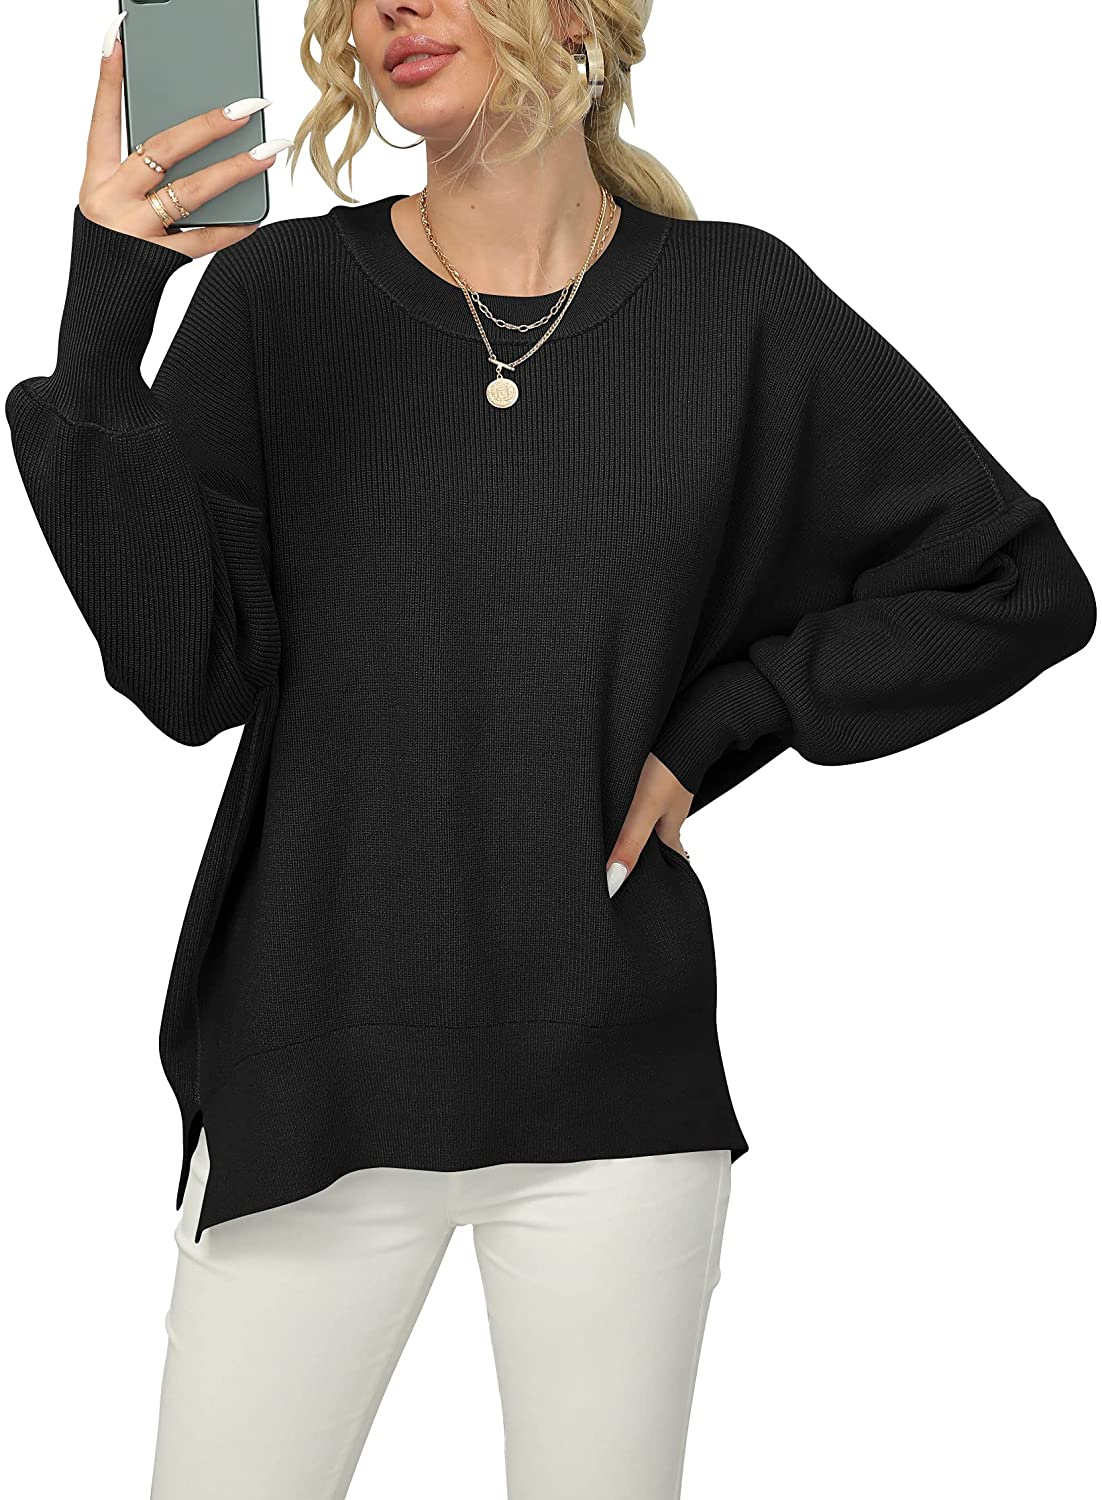 ANRABESS Women Crewneck Batwing Sleeve Oversized Side Slit Ribbed Knit Pullover Sweater Top